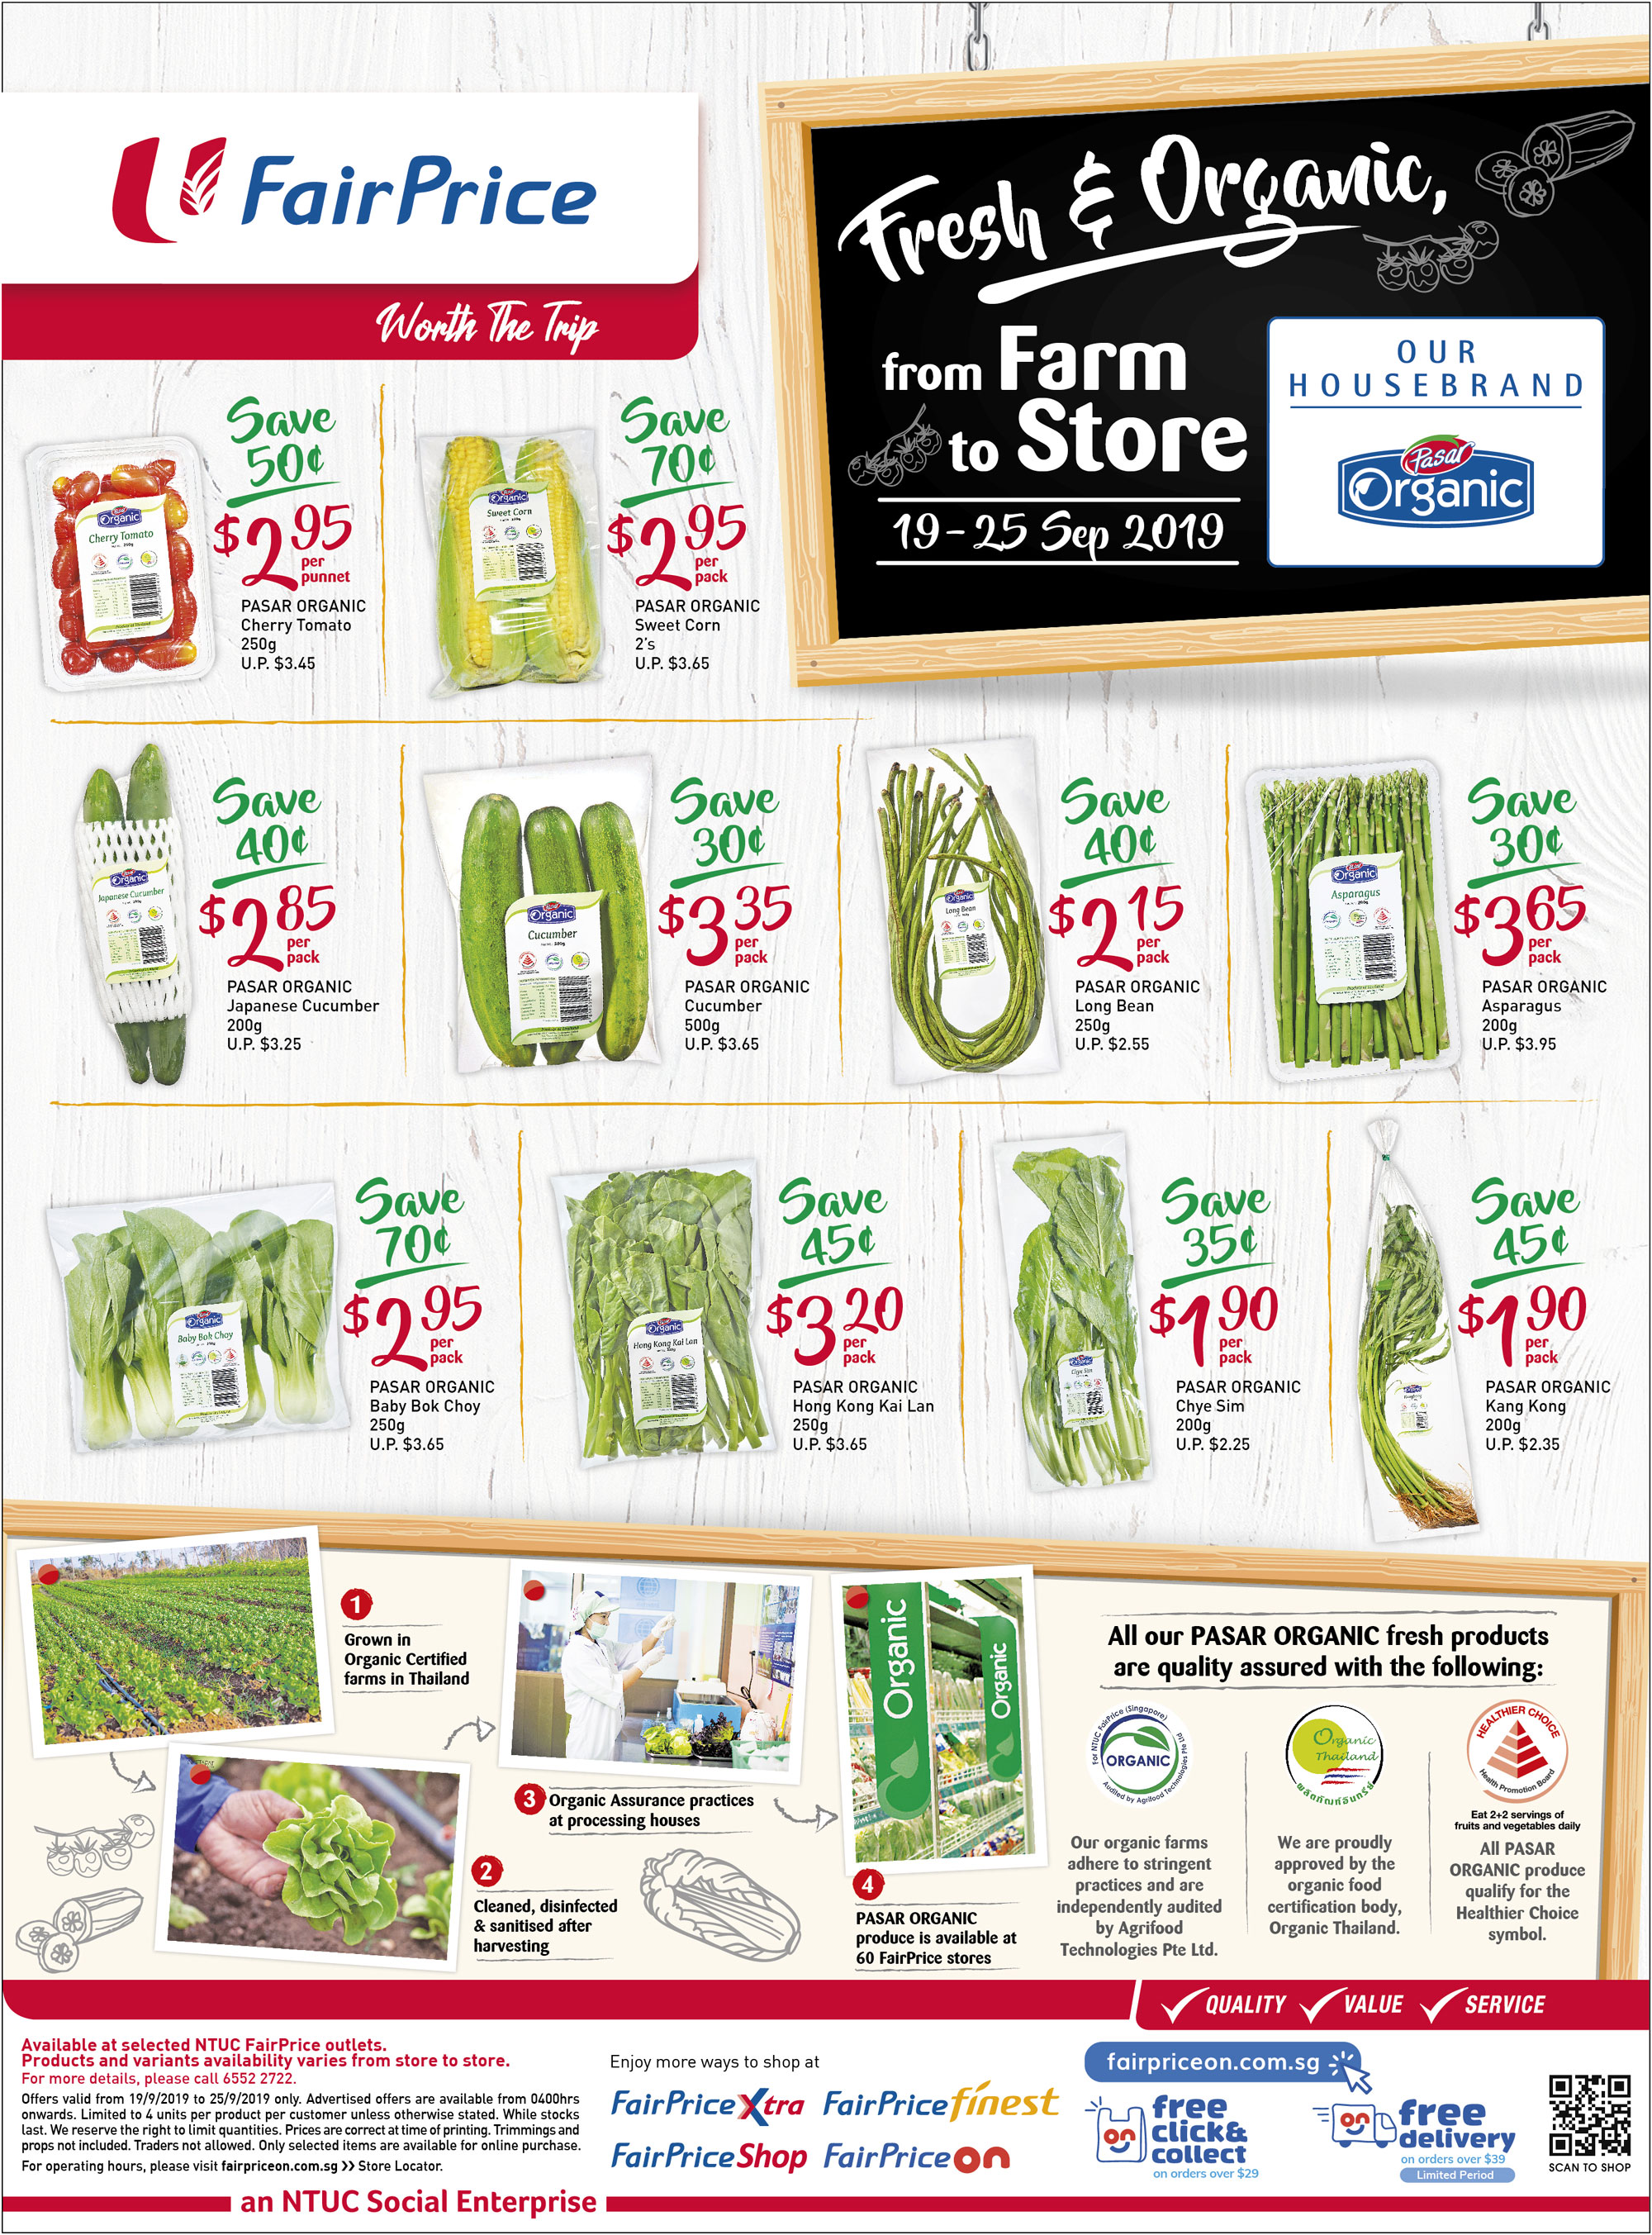 NTUC FairPrice Singapore Your Weekly Saver Promotion 19-25 Sep 2019 | Why Not Deals 5 & Promotions